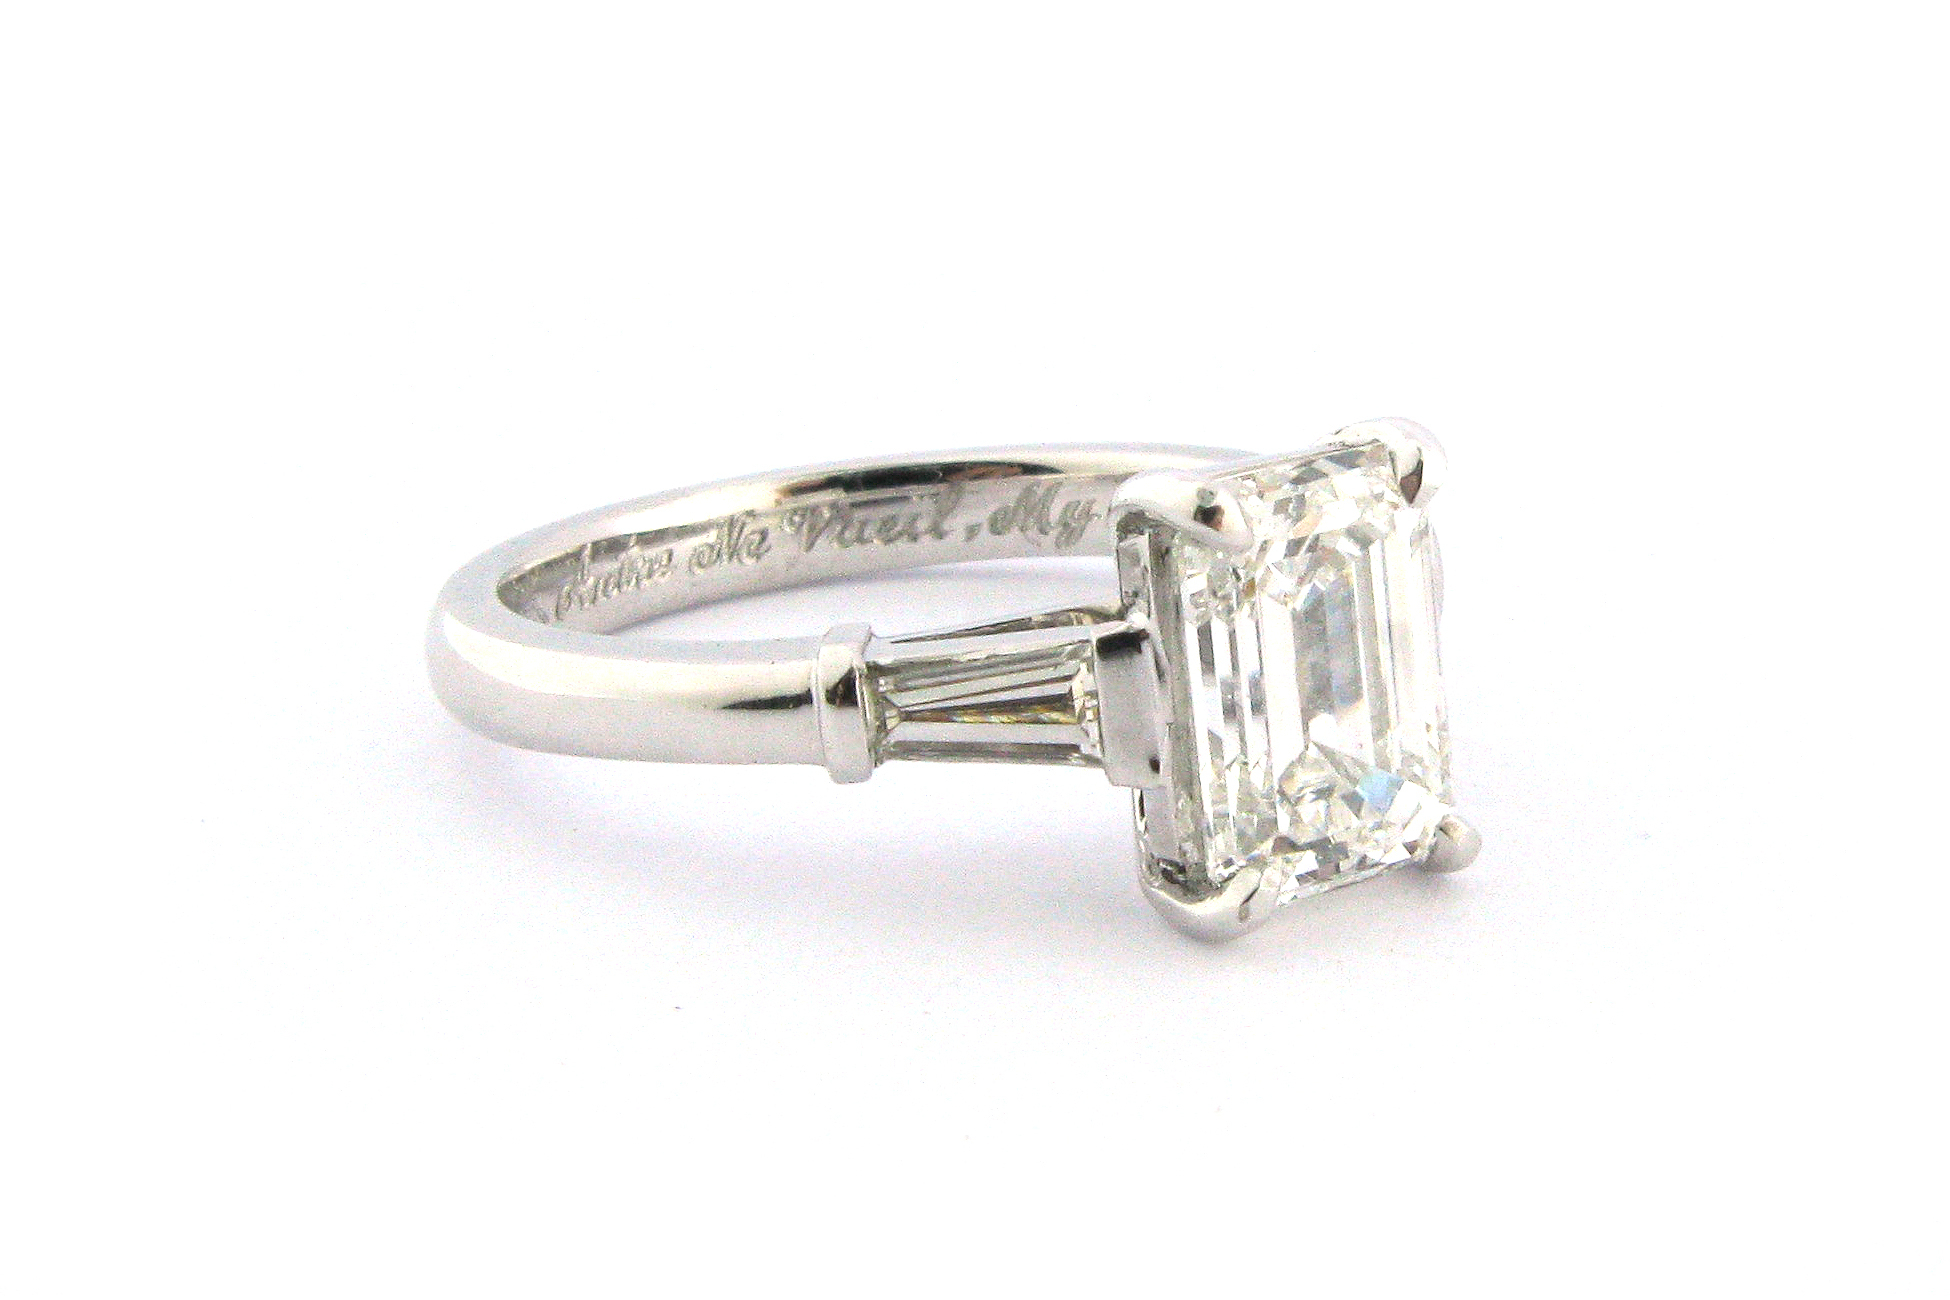 Emerald Cut Diamond With Tapered Baguette Side Stones With Regard To Emerald Cut Engagement Rings With Tapered Baguette Side Stones (Gallery 4 of 25)